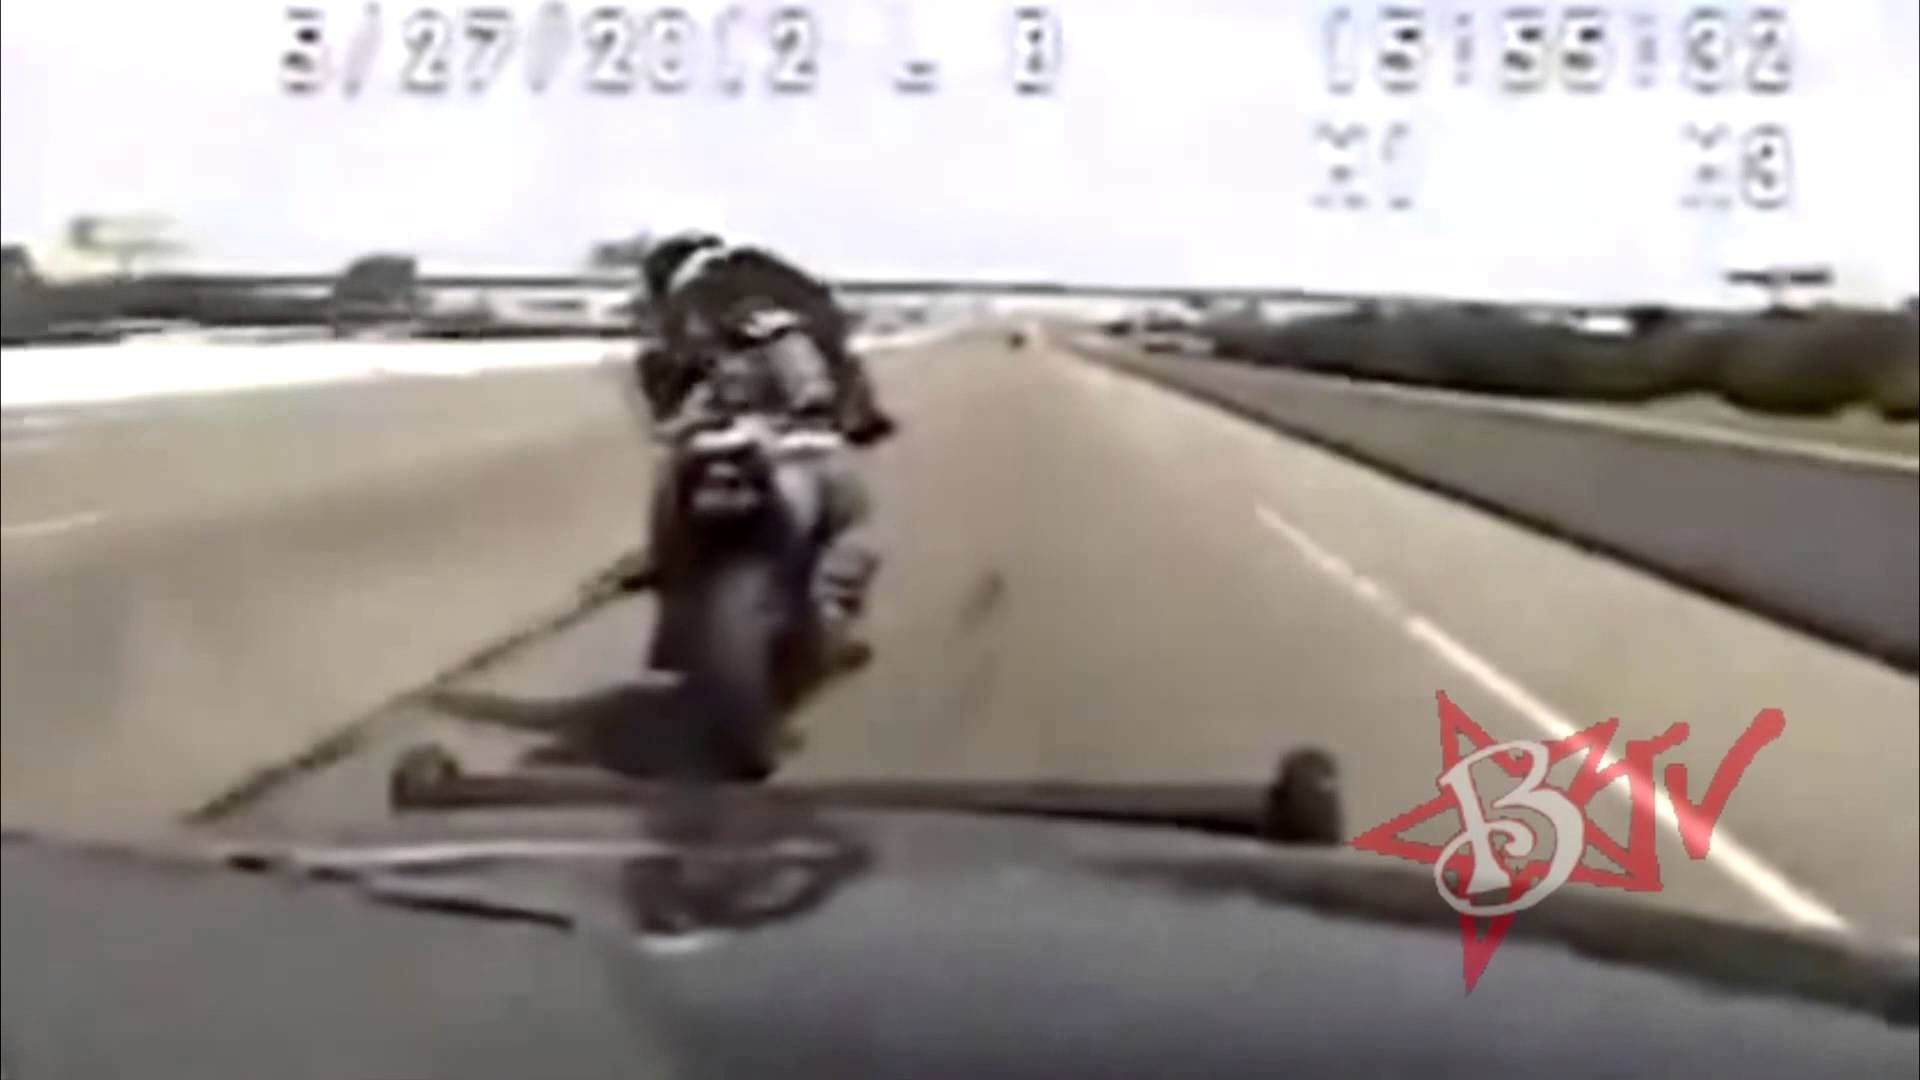 Police Chase Motorcycle Bike Vs Cop Actual Dash Cam Video